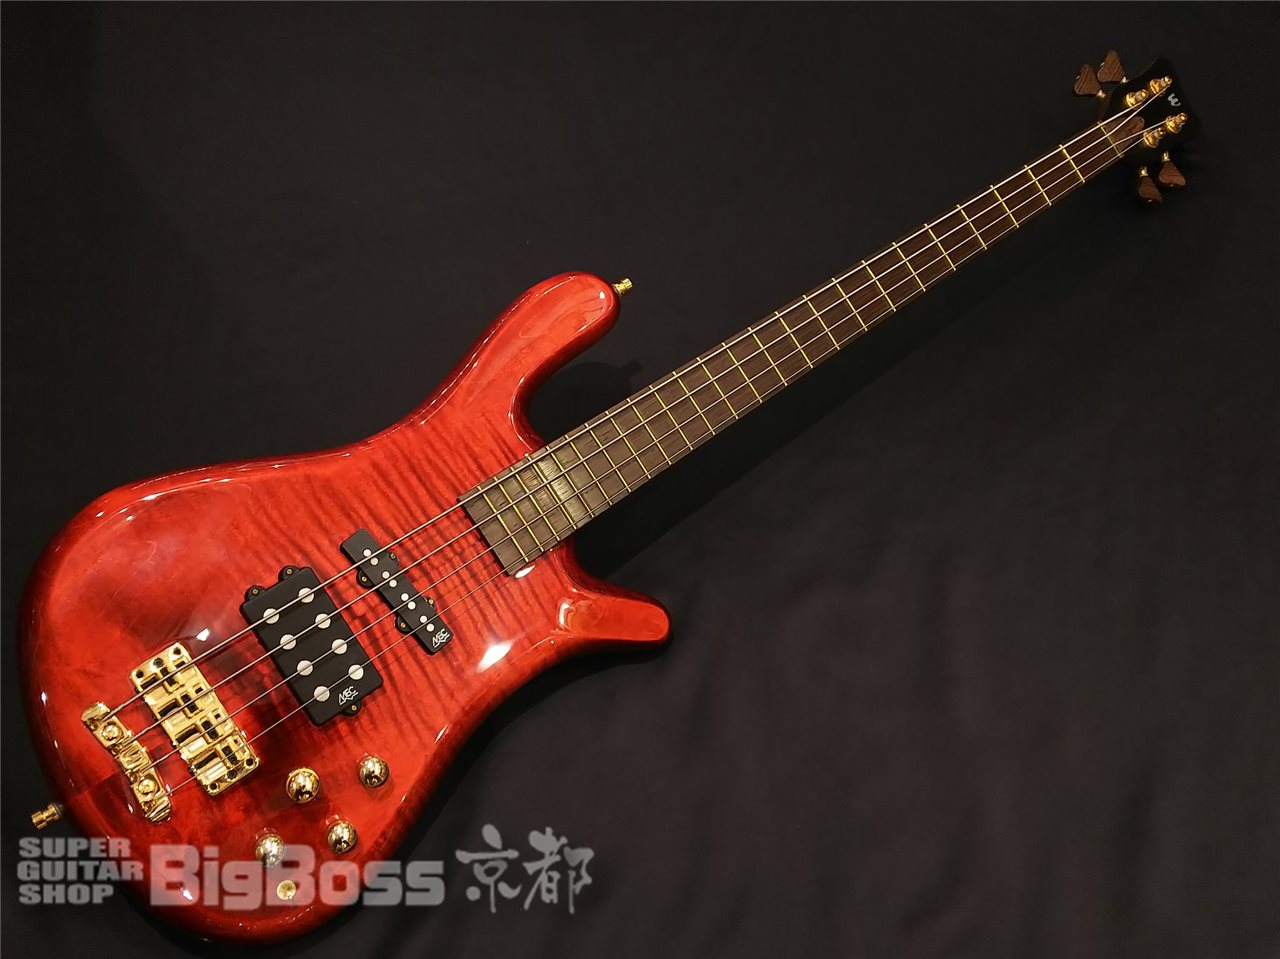 【即納可能】Warwick (ワーウィック) Custom Shop Streamer Jazzman WW SHIP G / Burgundy Red Transparent High Polish Maple 京都店